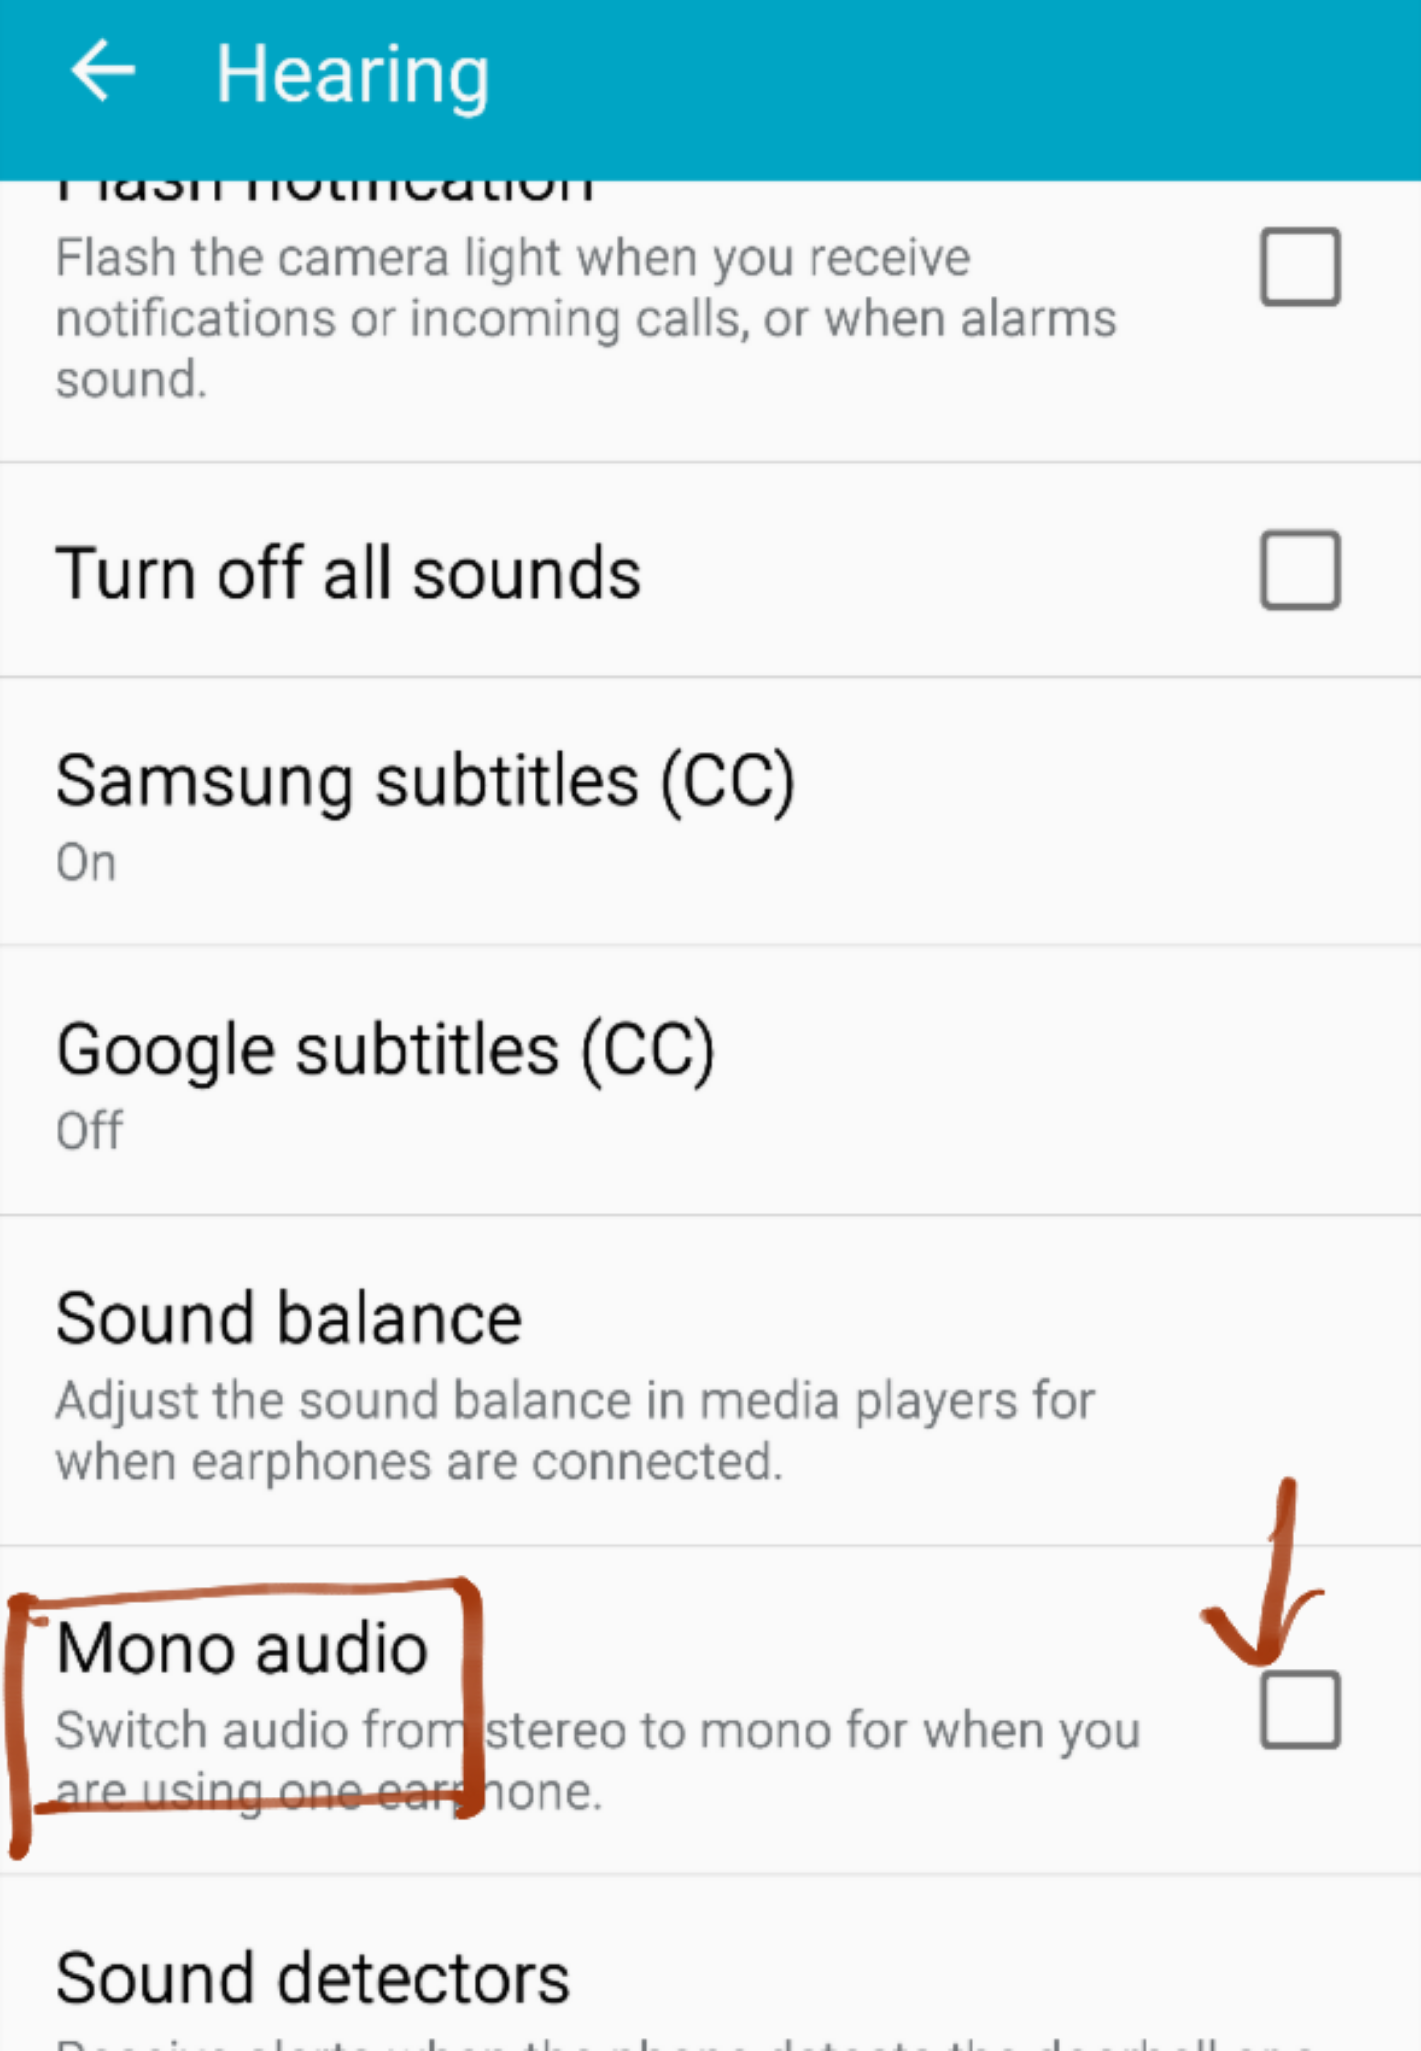 How to use Mono Audio channel to improve sound quality while using a single earbud in iOS and Android